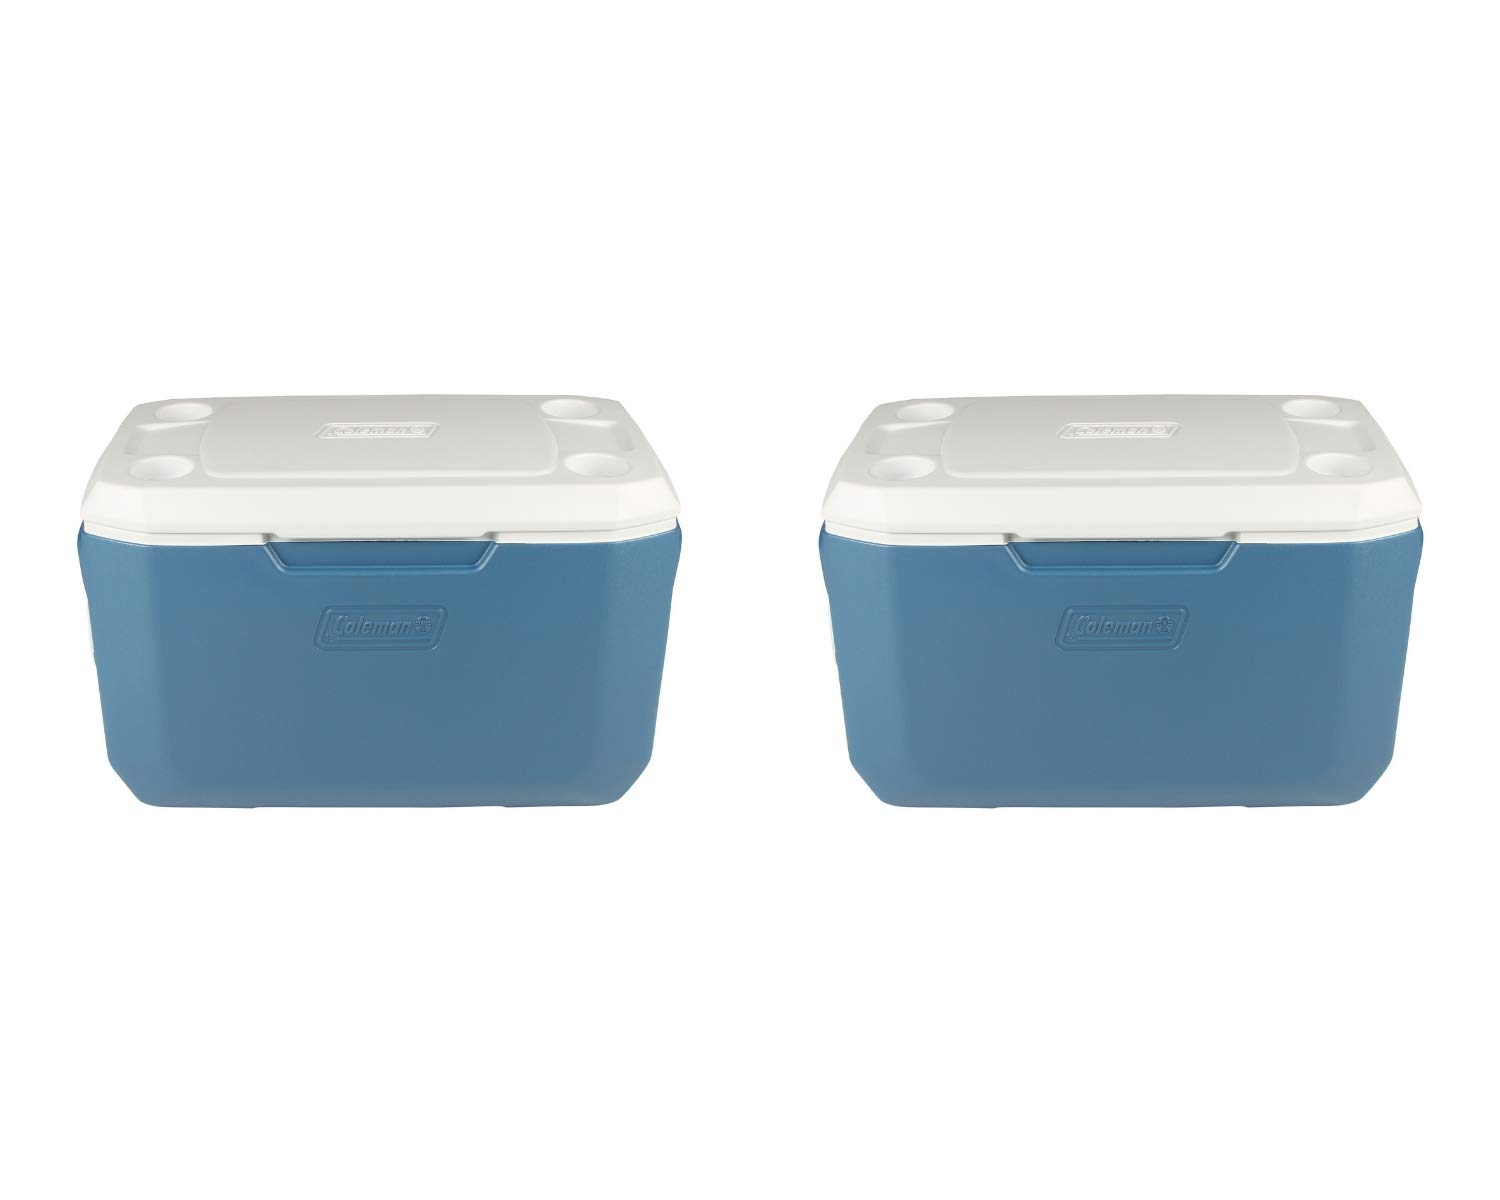 Coleman 70-Quart Xtreme 5-Day Heavy-Duty Cooler, Blue (2 Set, 70-Quart, Blue)